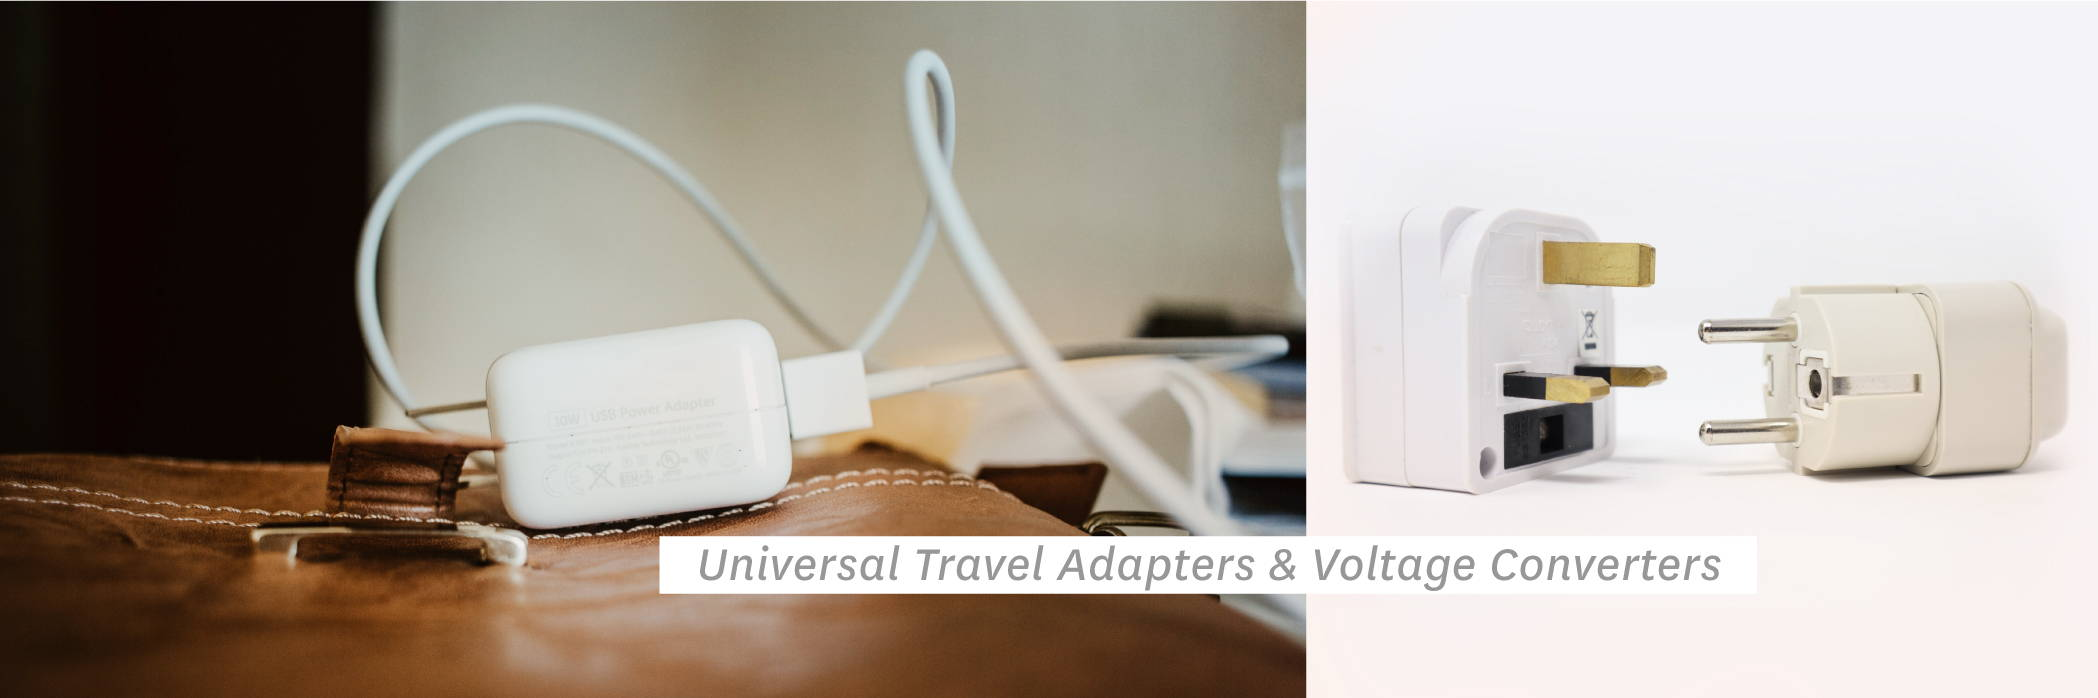 Universal Travel Adapters & Voltage Converters